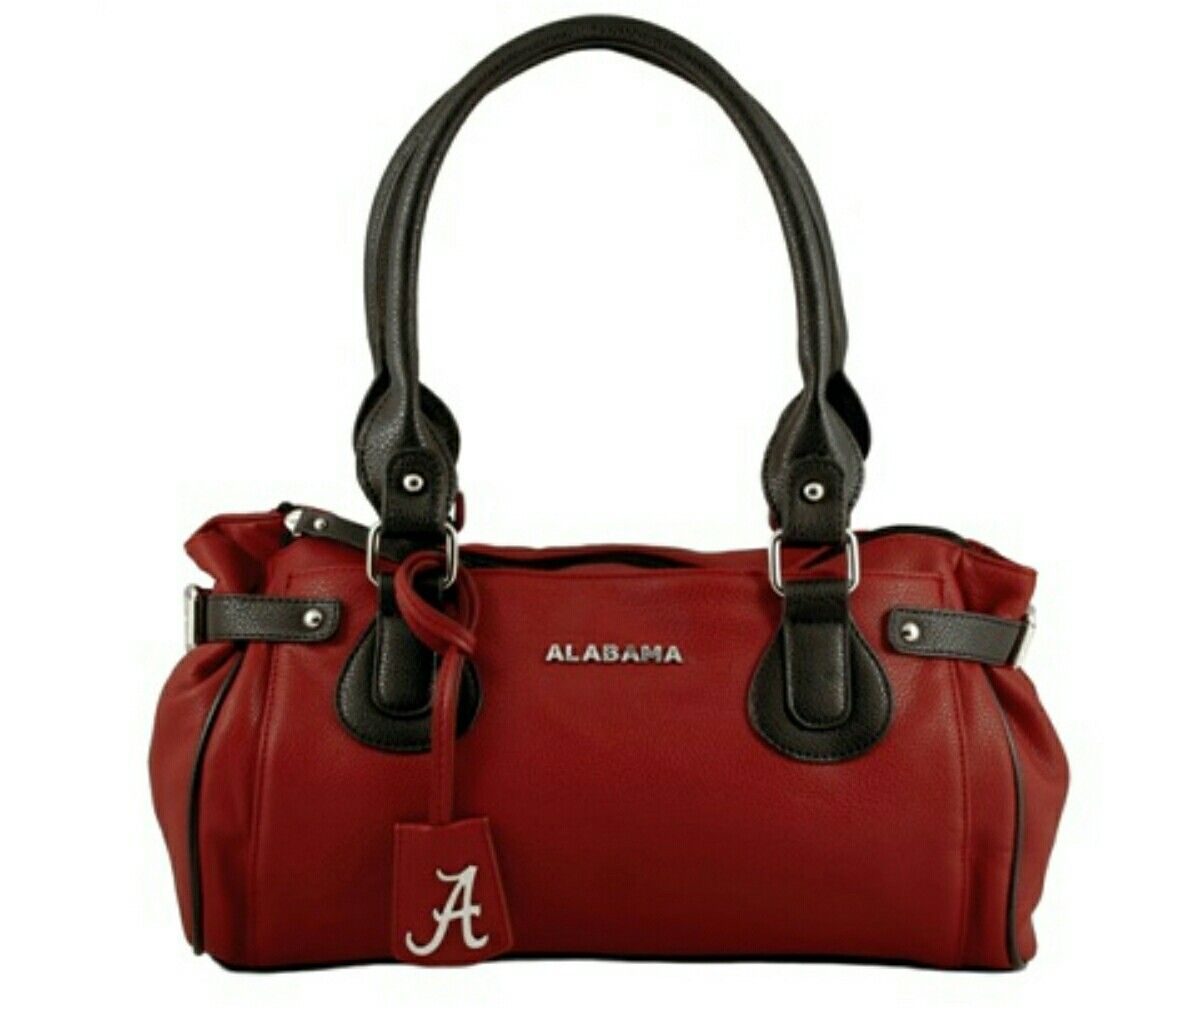 Pin by misty taylor on Purses i would love Bags, College